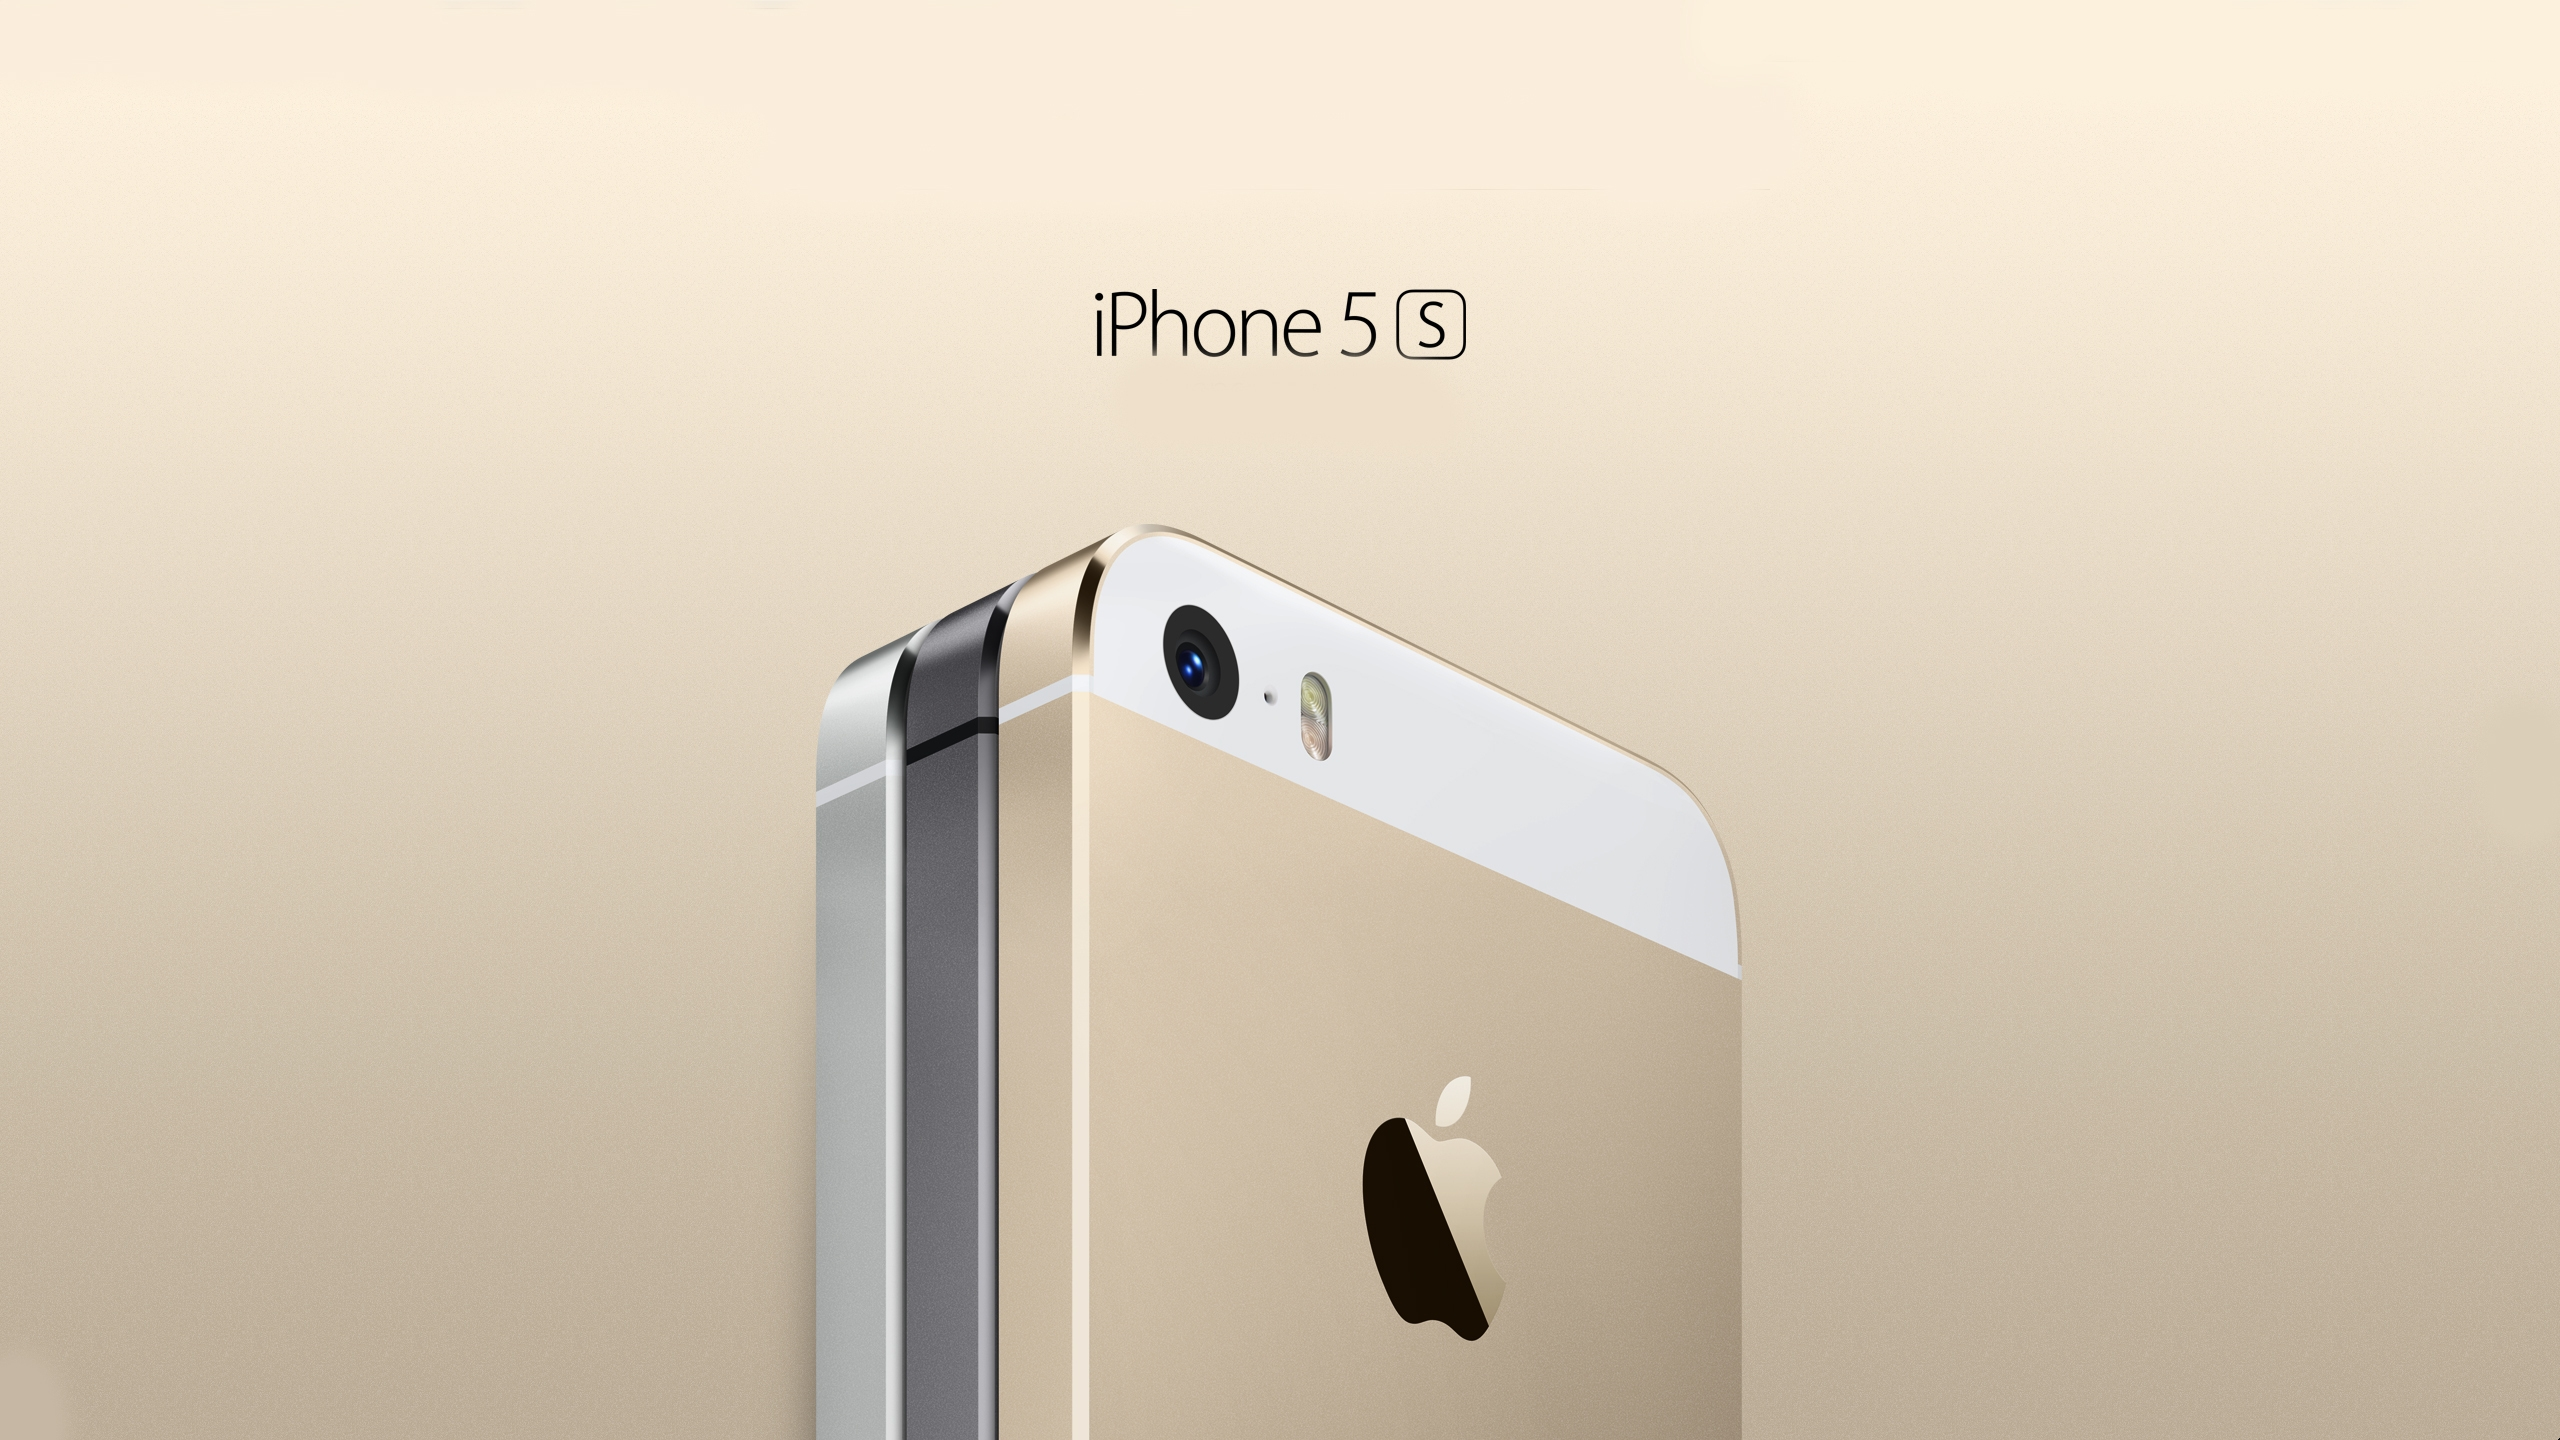 Cool iPhone 5S for 2560x1440 HDTV resolution